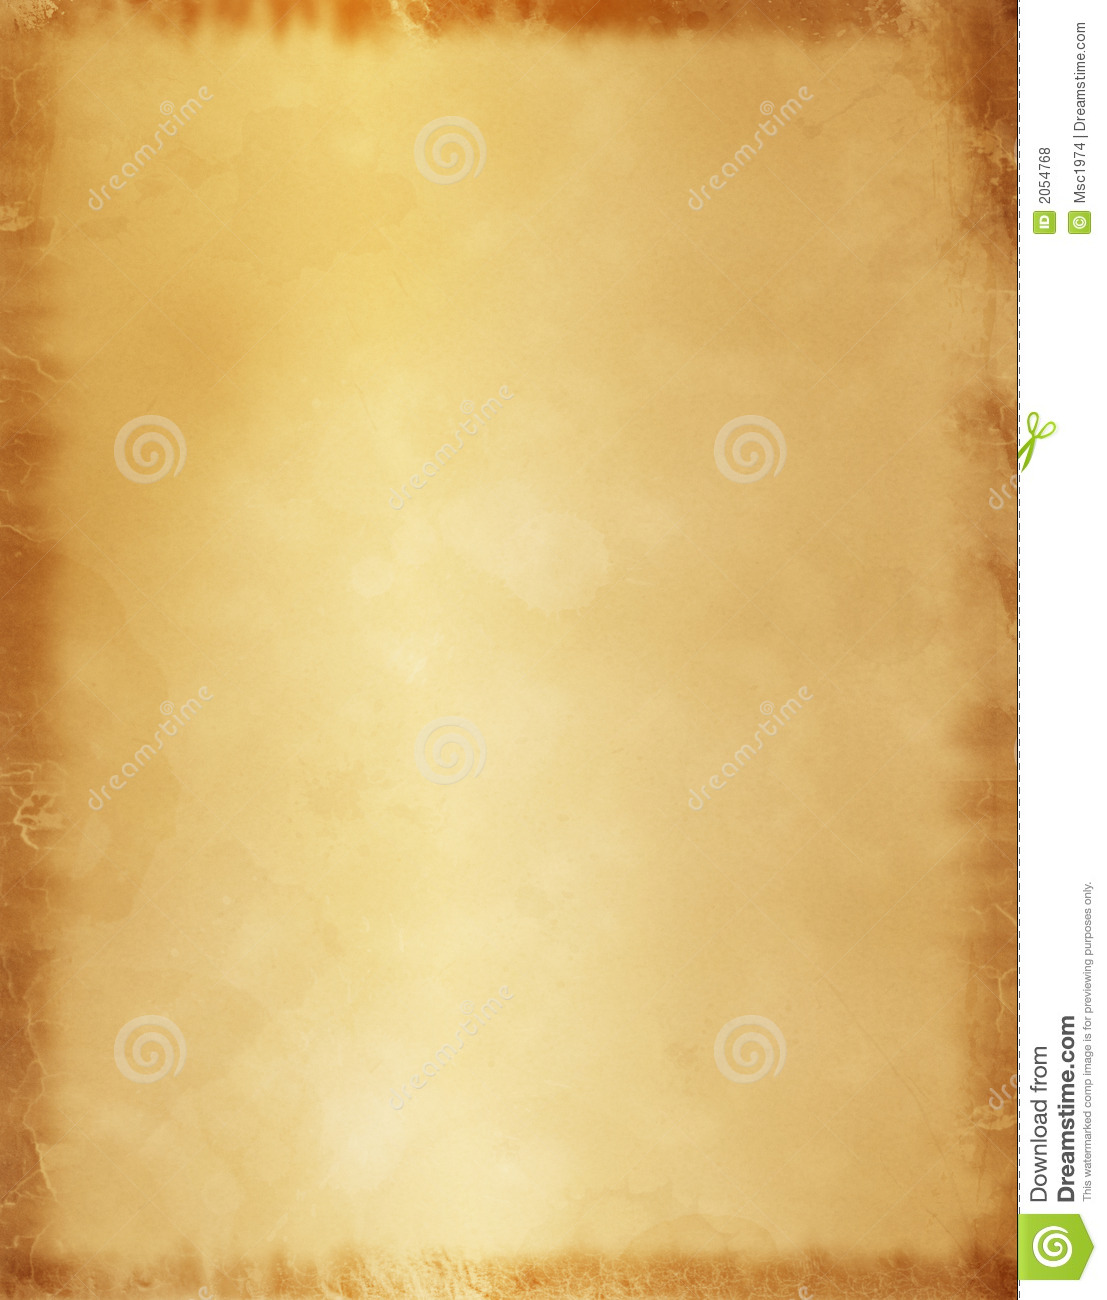 old parchment paper background stock illustration illustration of